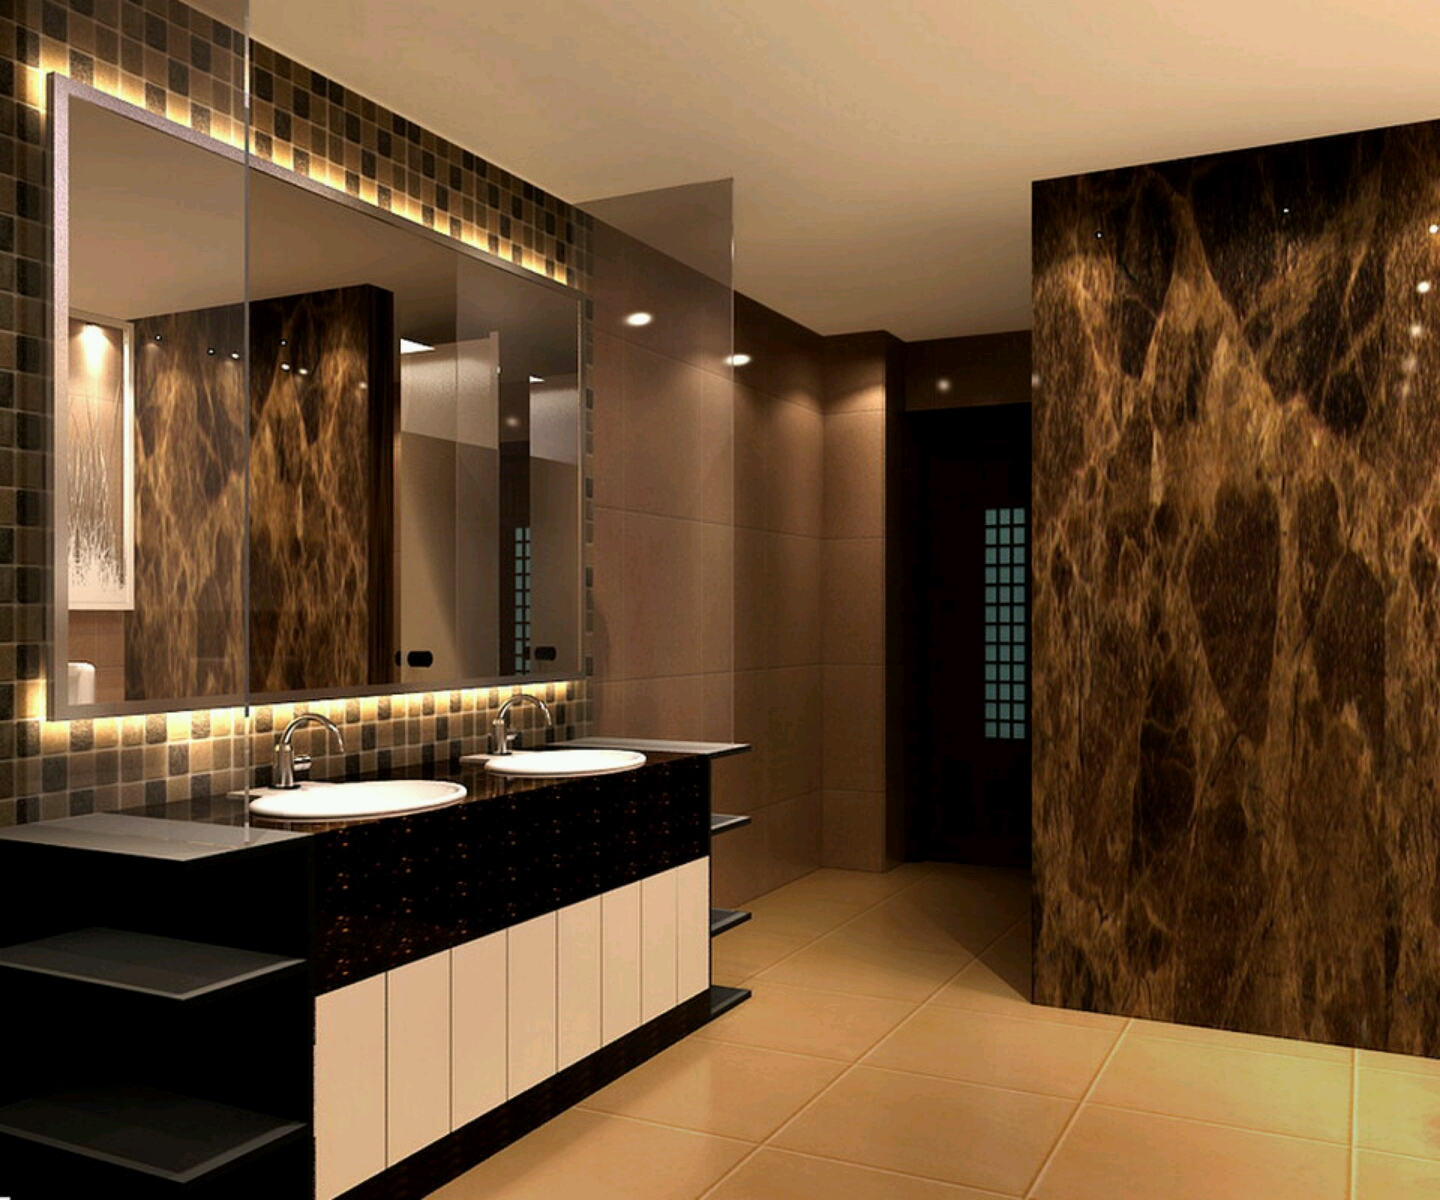 New home designs latest modern homes modern bathrooms designs ideas Beautiful modern bathroom design